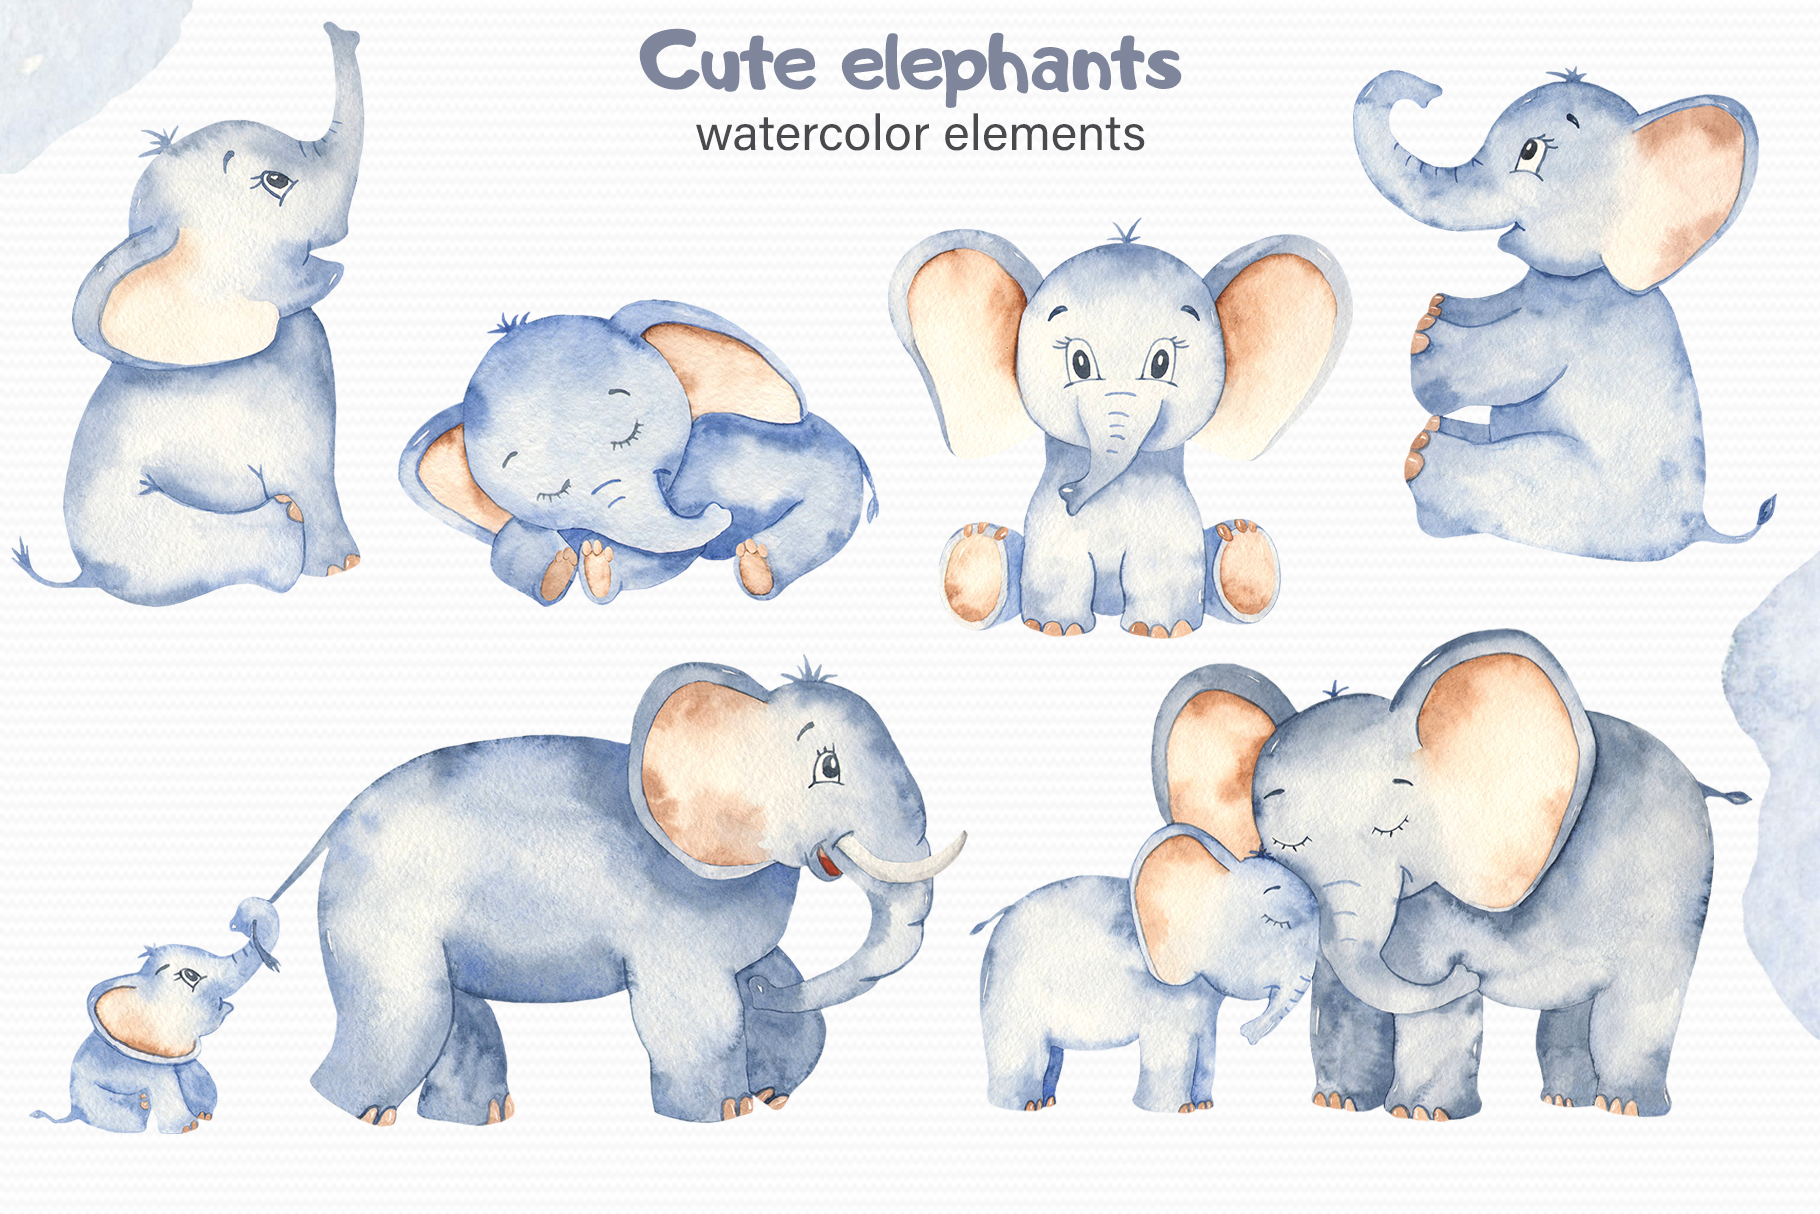 Cute elephants watercolor collection clipart example image 10